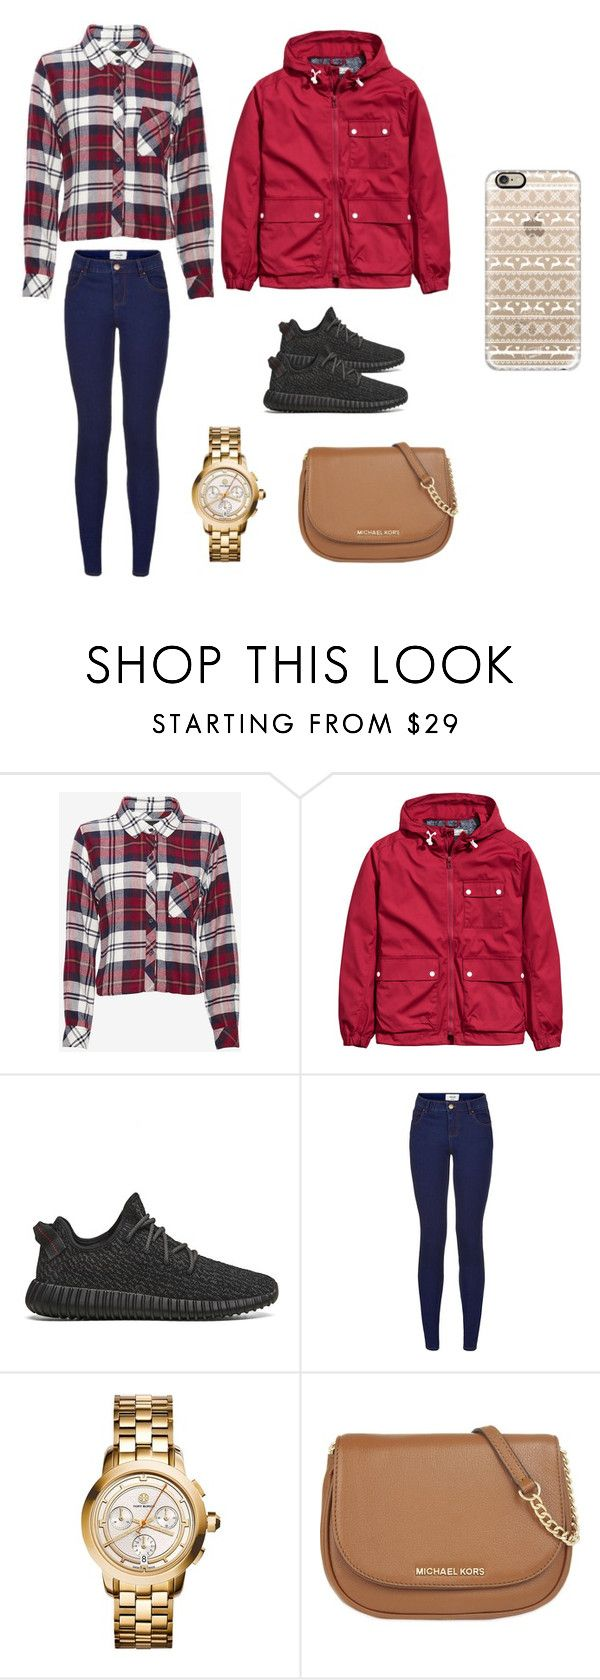 """School close"" by alyissa-narvais ❤ liked on Polyvore featuring Rails, adidas Originals, Tory Burch, MICHAEL Michael Kors, Casetify, women's clothing, women's fashion, women, female and woman"